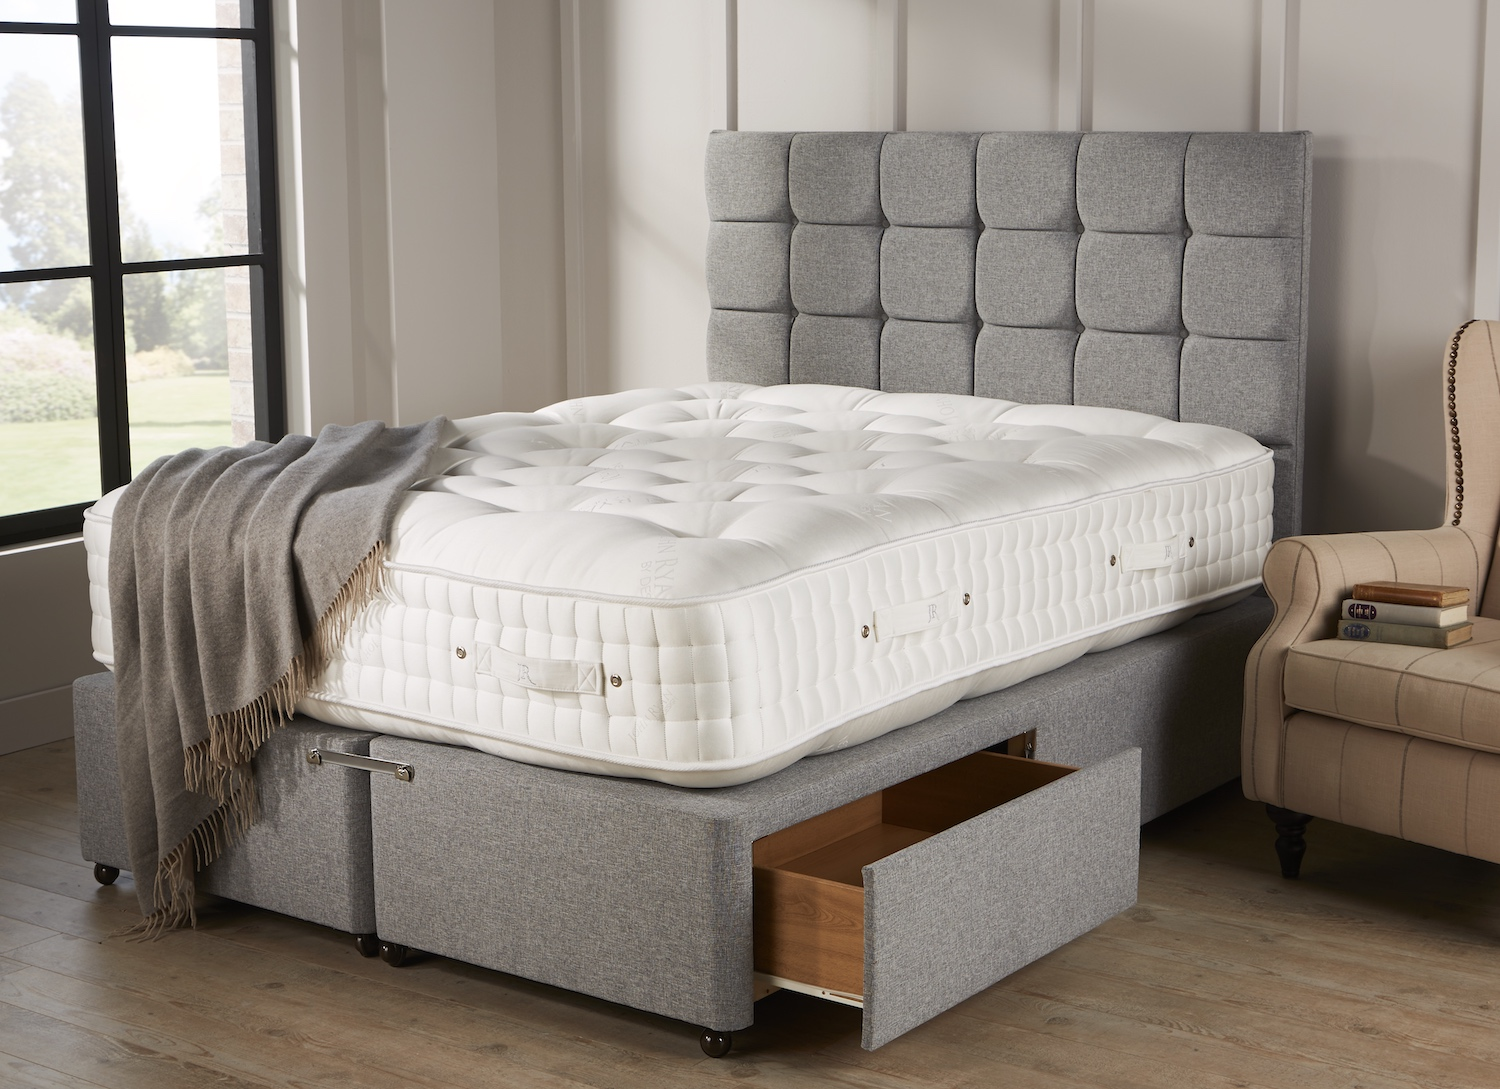 The Best Tip About Buying A Pocket Sprung Mattress John Ryan By De Tokyo Bed Divans All Of Our Mattresses Are Hand Made Here In Uk Why Not View Range